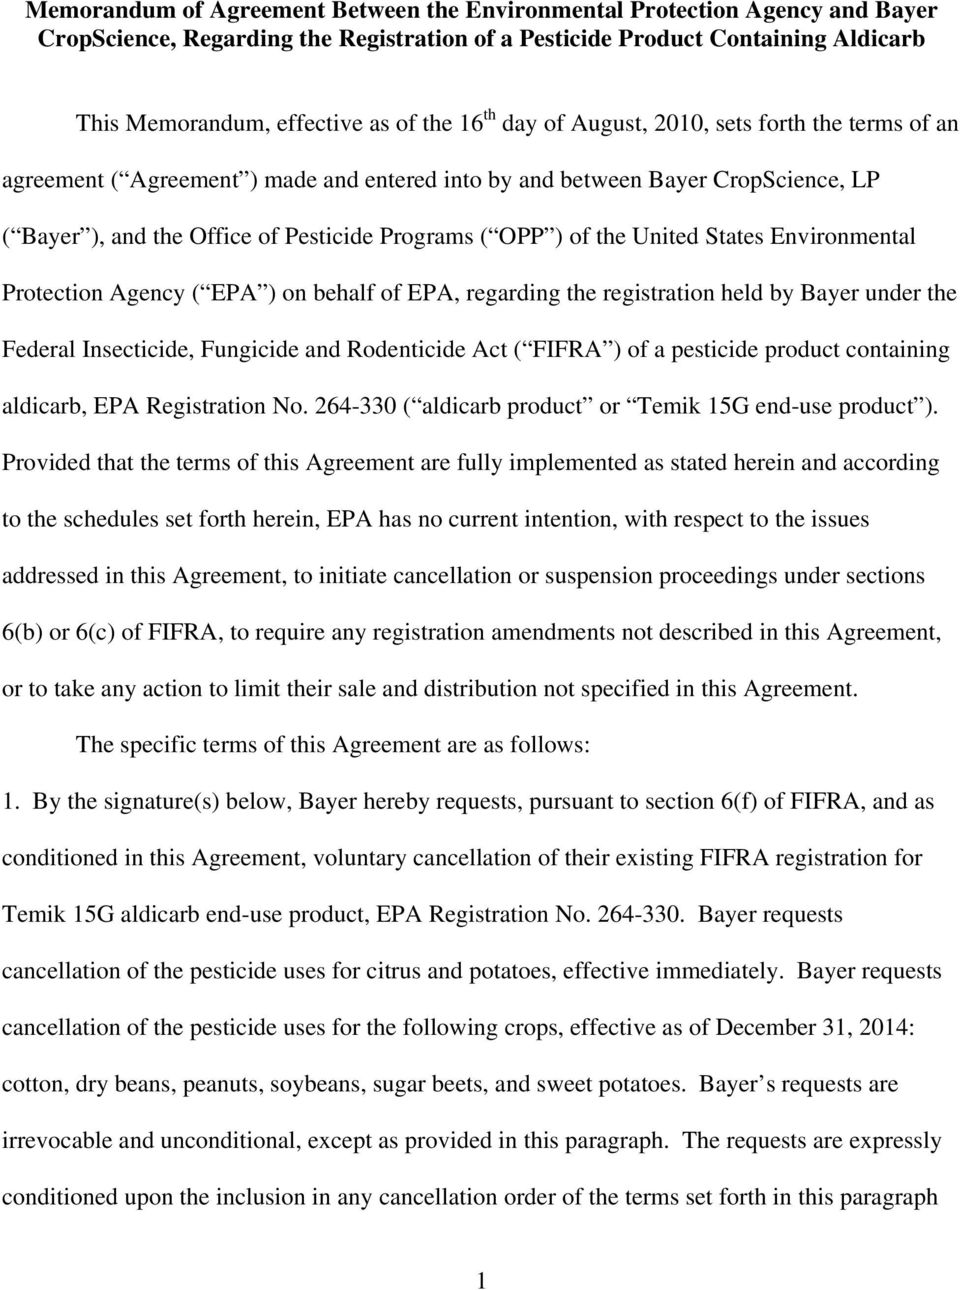 United States Environmental Protection Agency ( EPA ) on behalf of EPA, regarding the registration held by Bayer under the Federal Insecticide, Fungicide and Rodenticide Act ( FIFRA ) of a pesticide